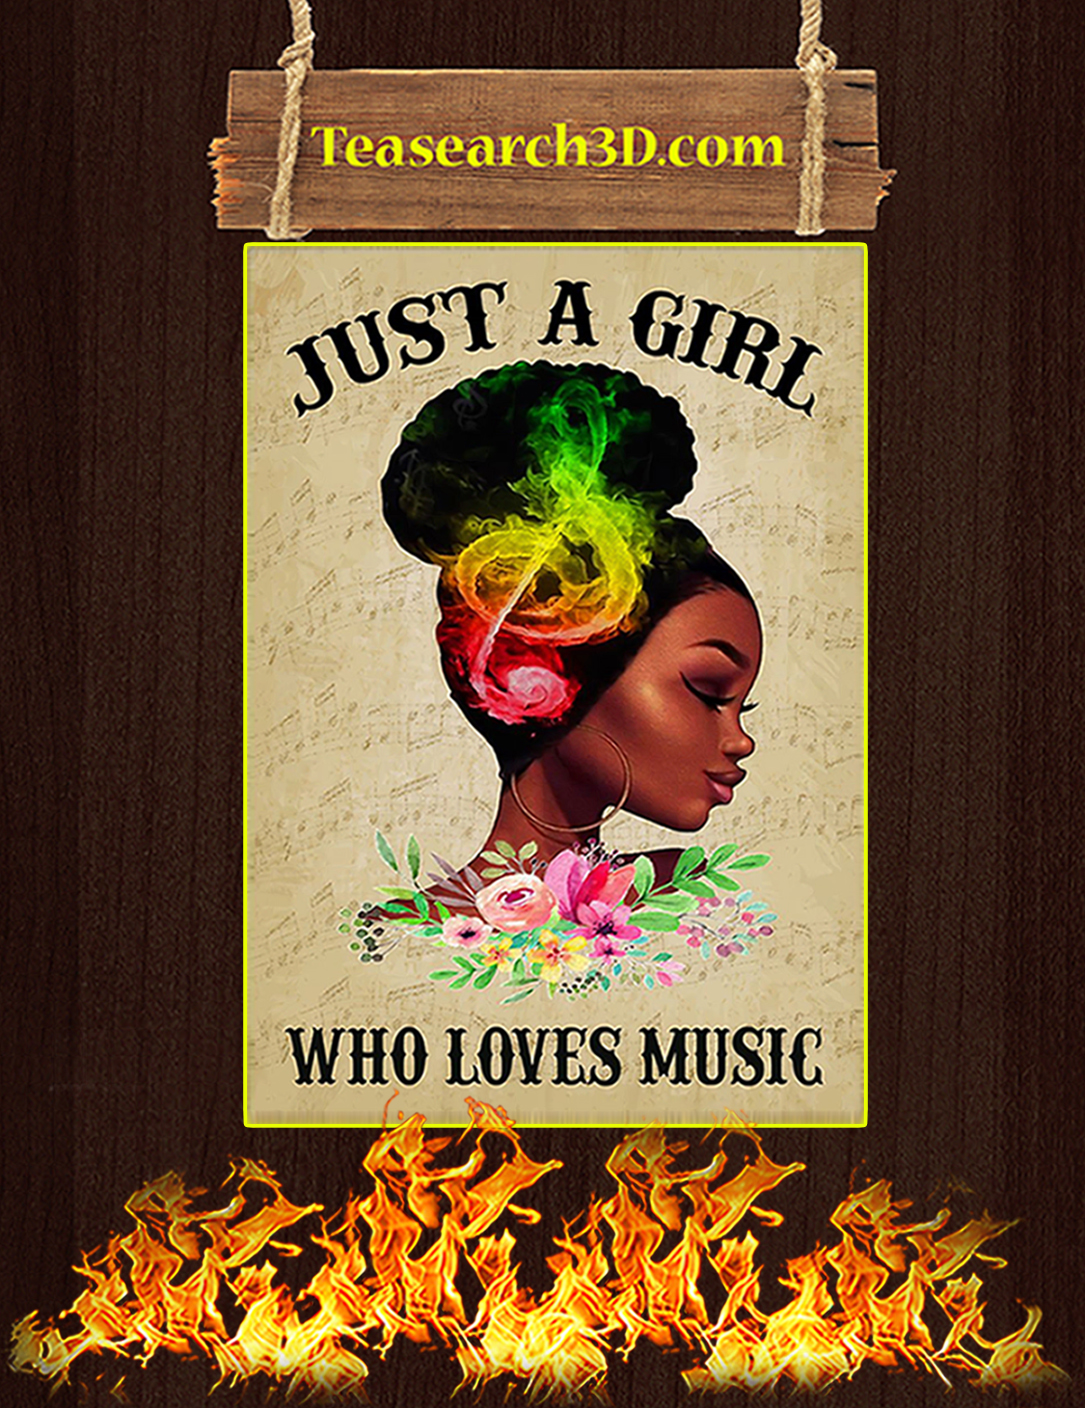 Just a girl who loves music poster A2